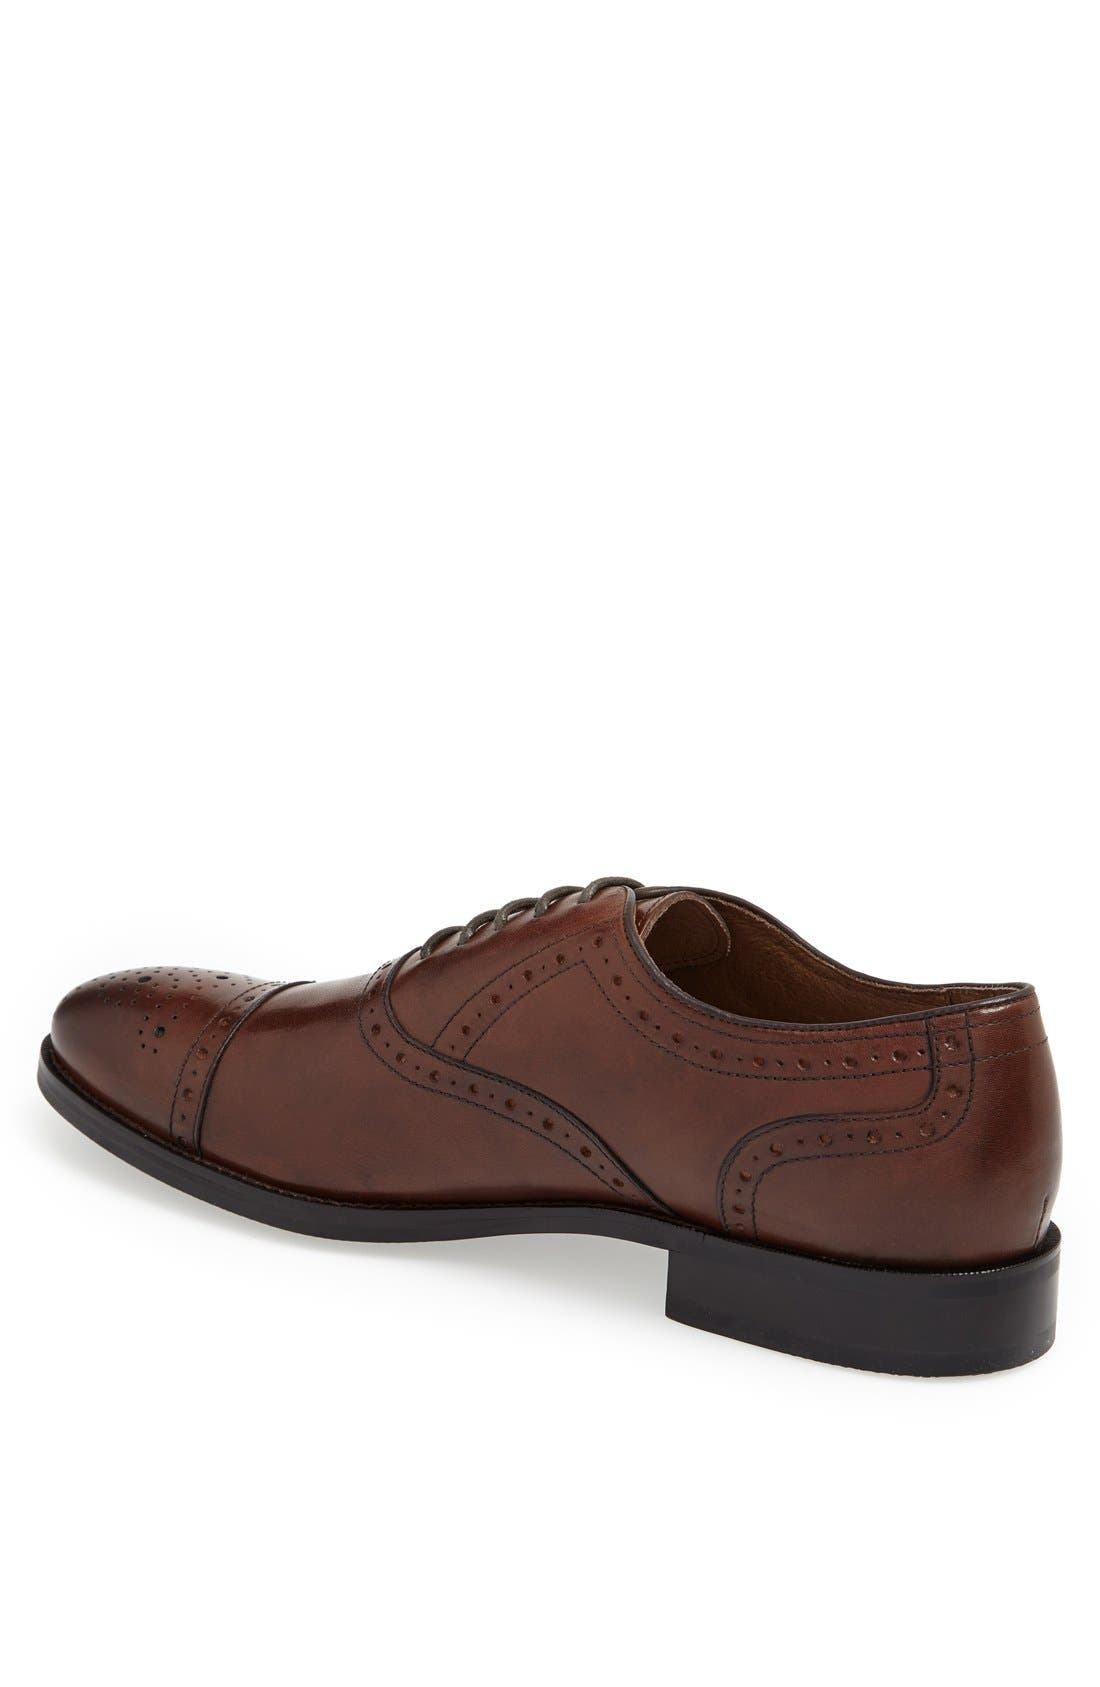 Alternate Image 2  - Johnston & Murphy 'Tyndall' Cap Toe Oxford (Online Only)